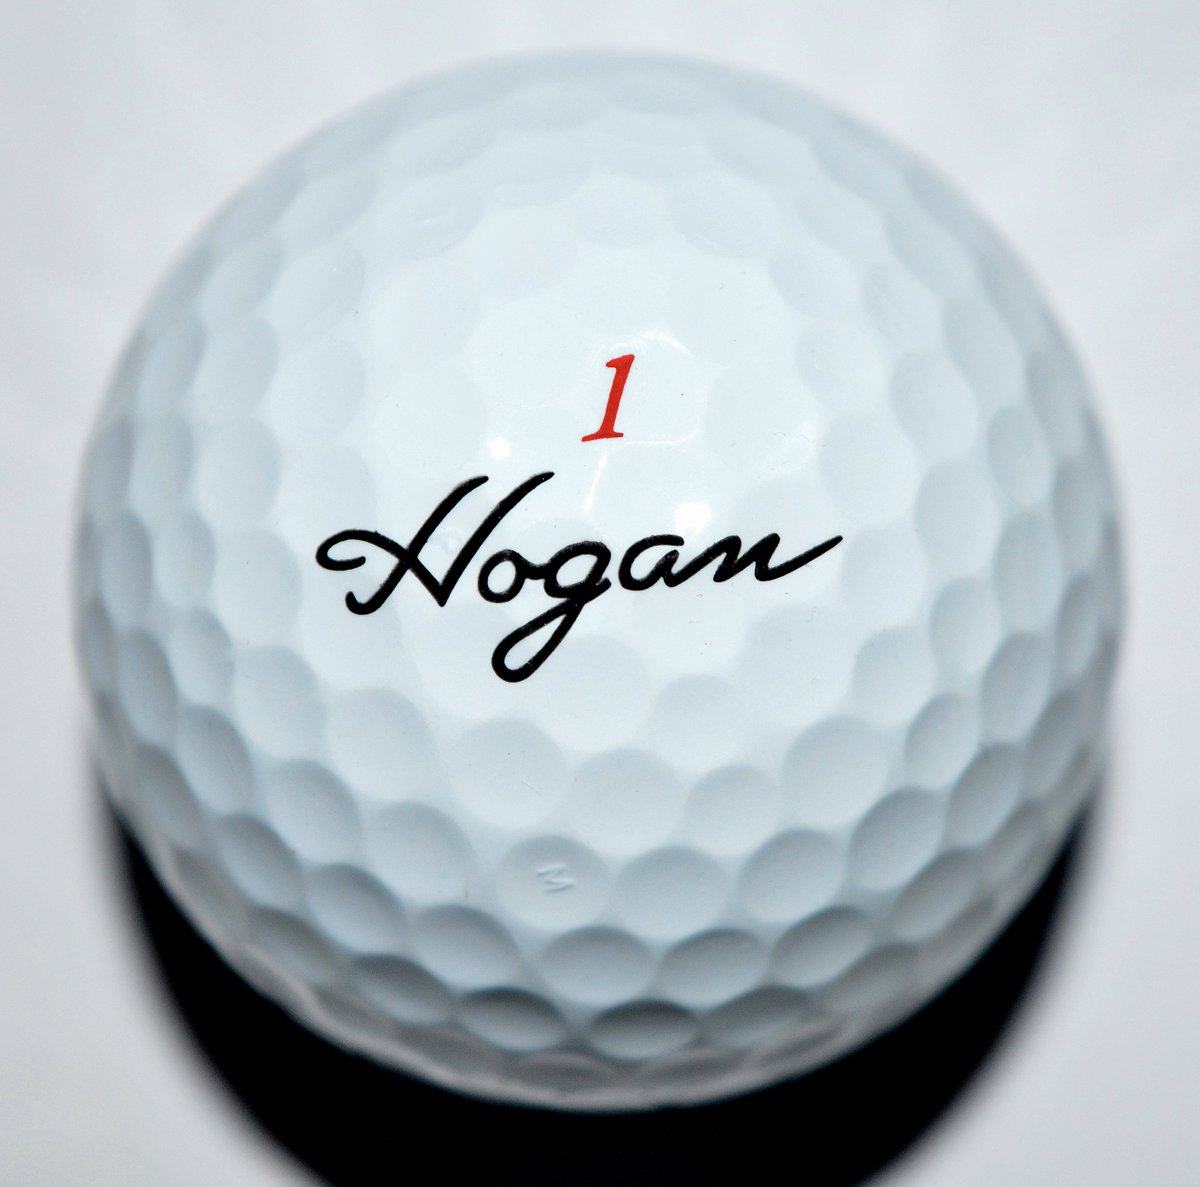 Golf Balls Gone By on Twitter: